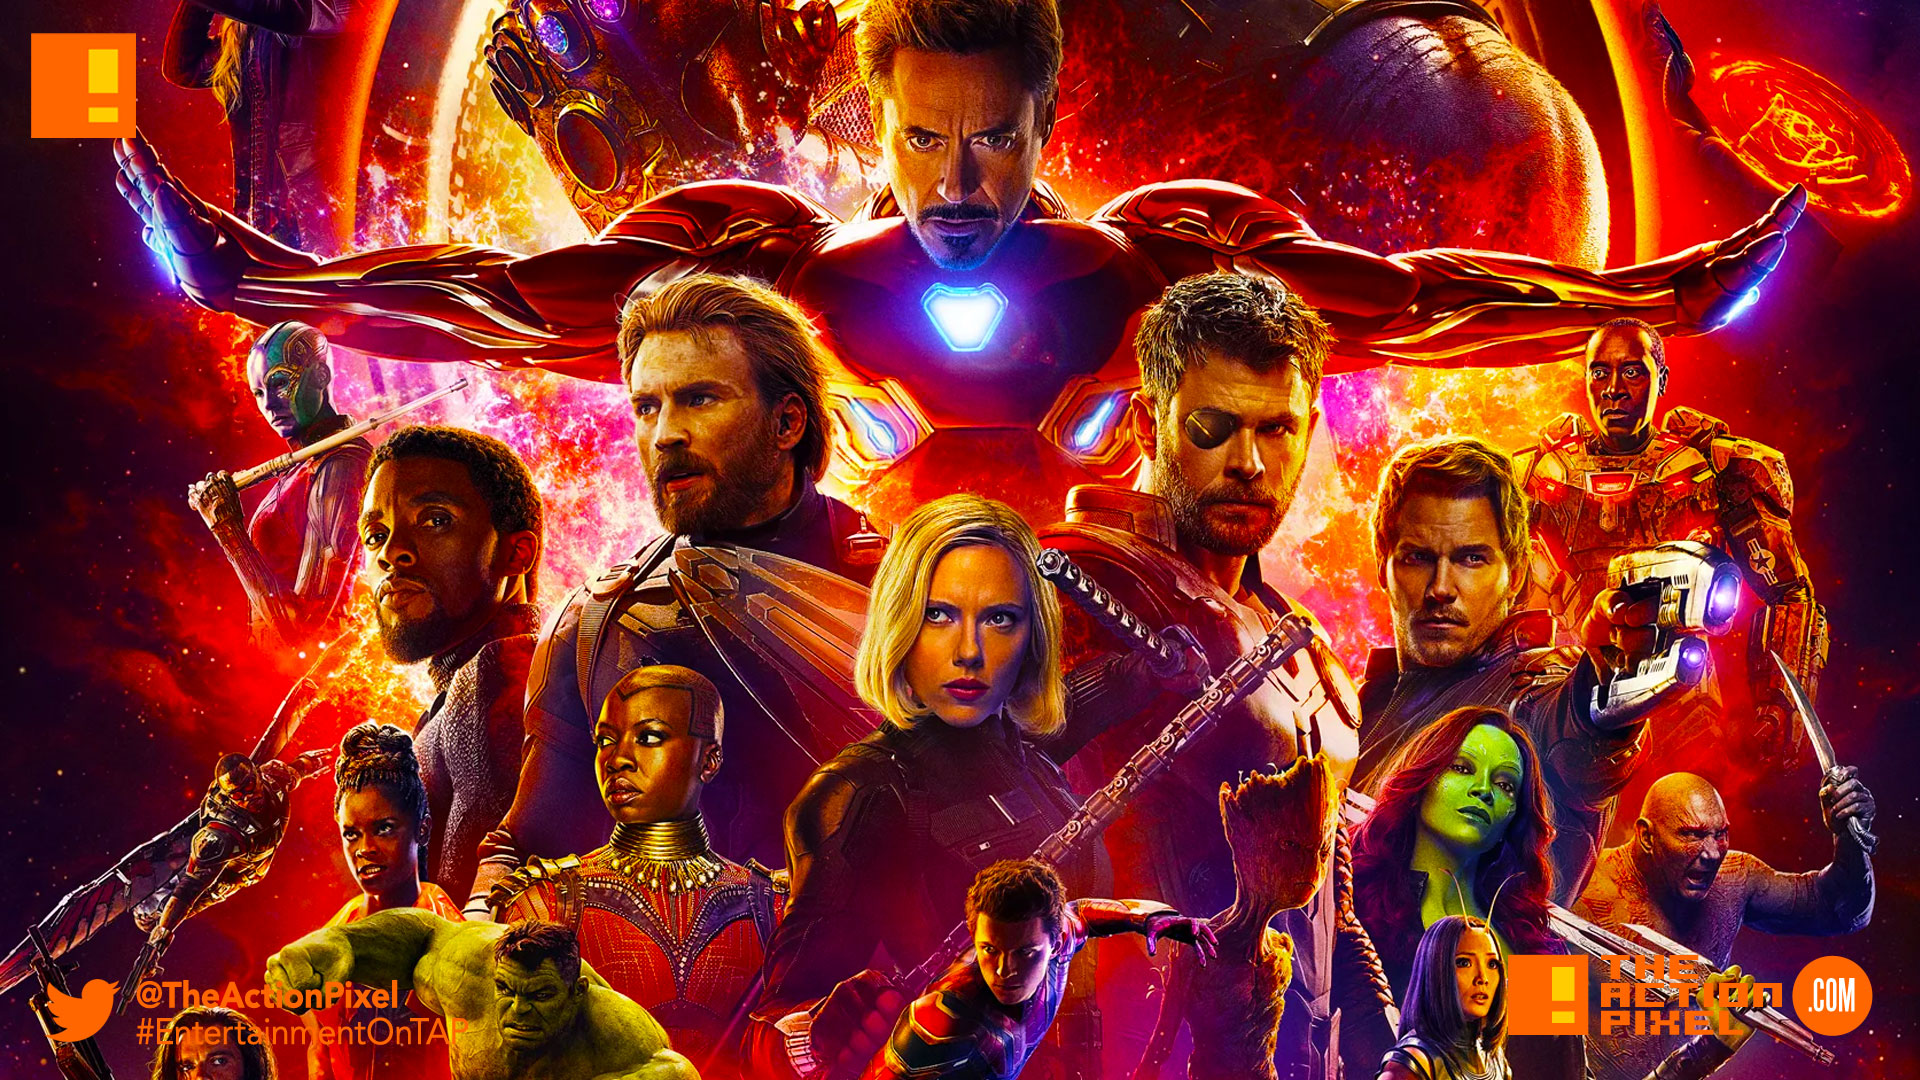 loki, thor,marvel infinity war,avengers, avengers: infinity war, entertainment on tap,the action pixel, marvel , marvel studios, marvel comics , thanos, infinity stones, guardians of the galaxy, thor, iron man, steve rogers, captain america, stills,poster